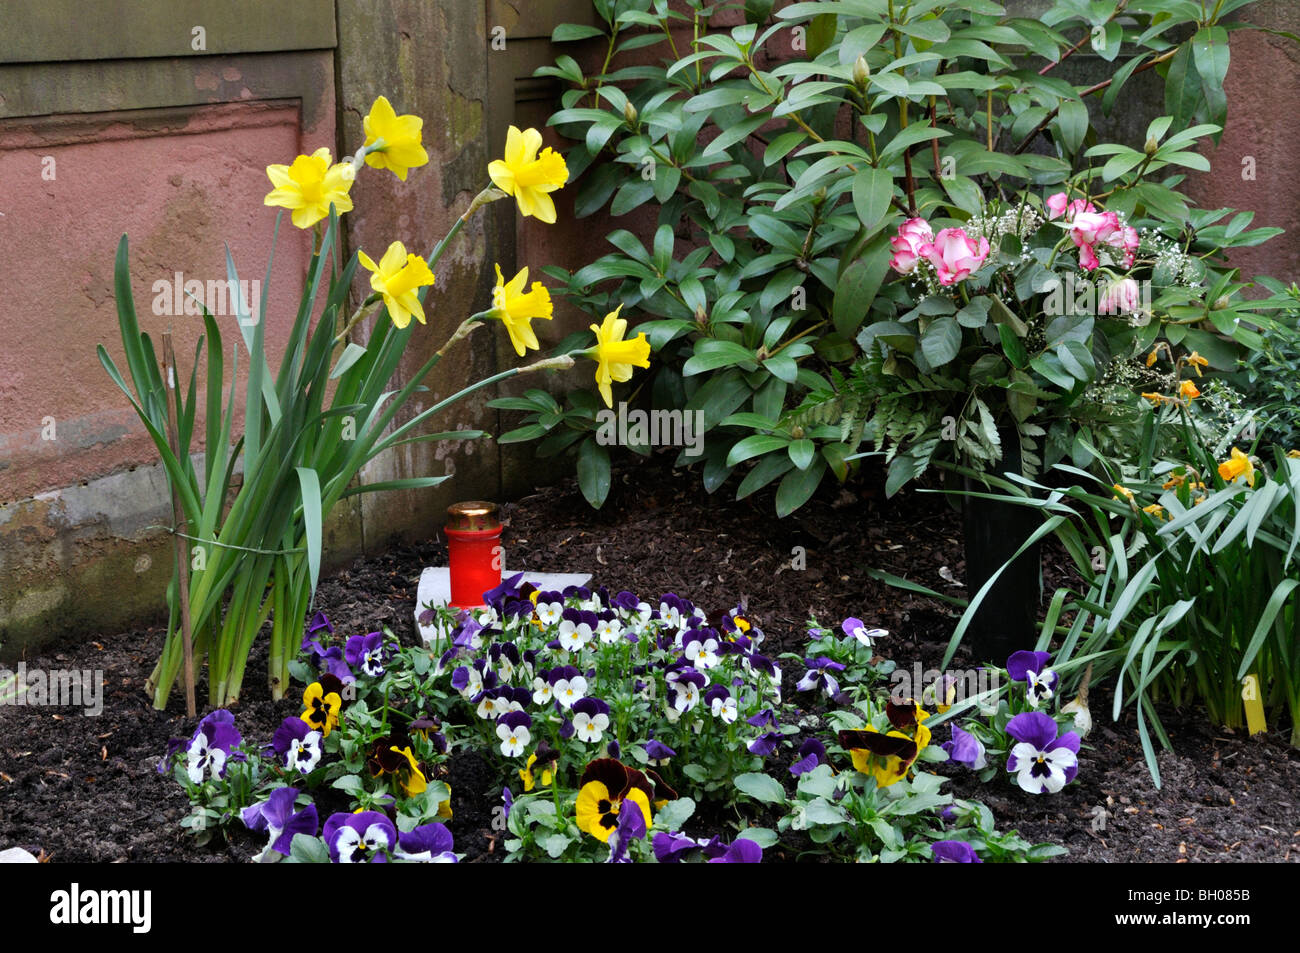 Grave Decoration Grave Decoration With Daffodils Narcissus And Violets Viola